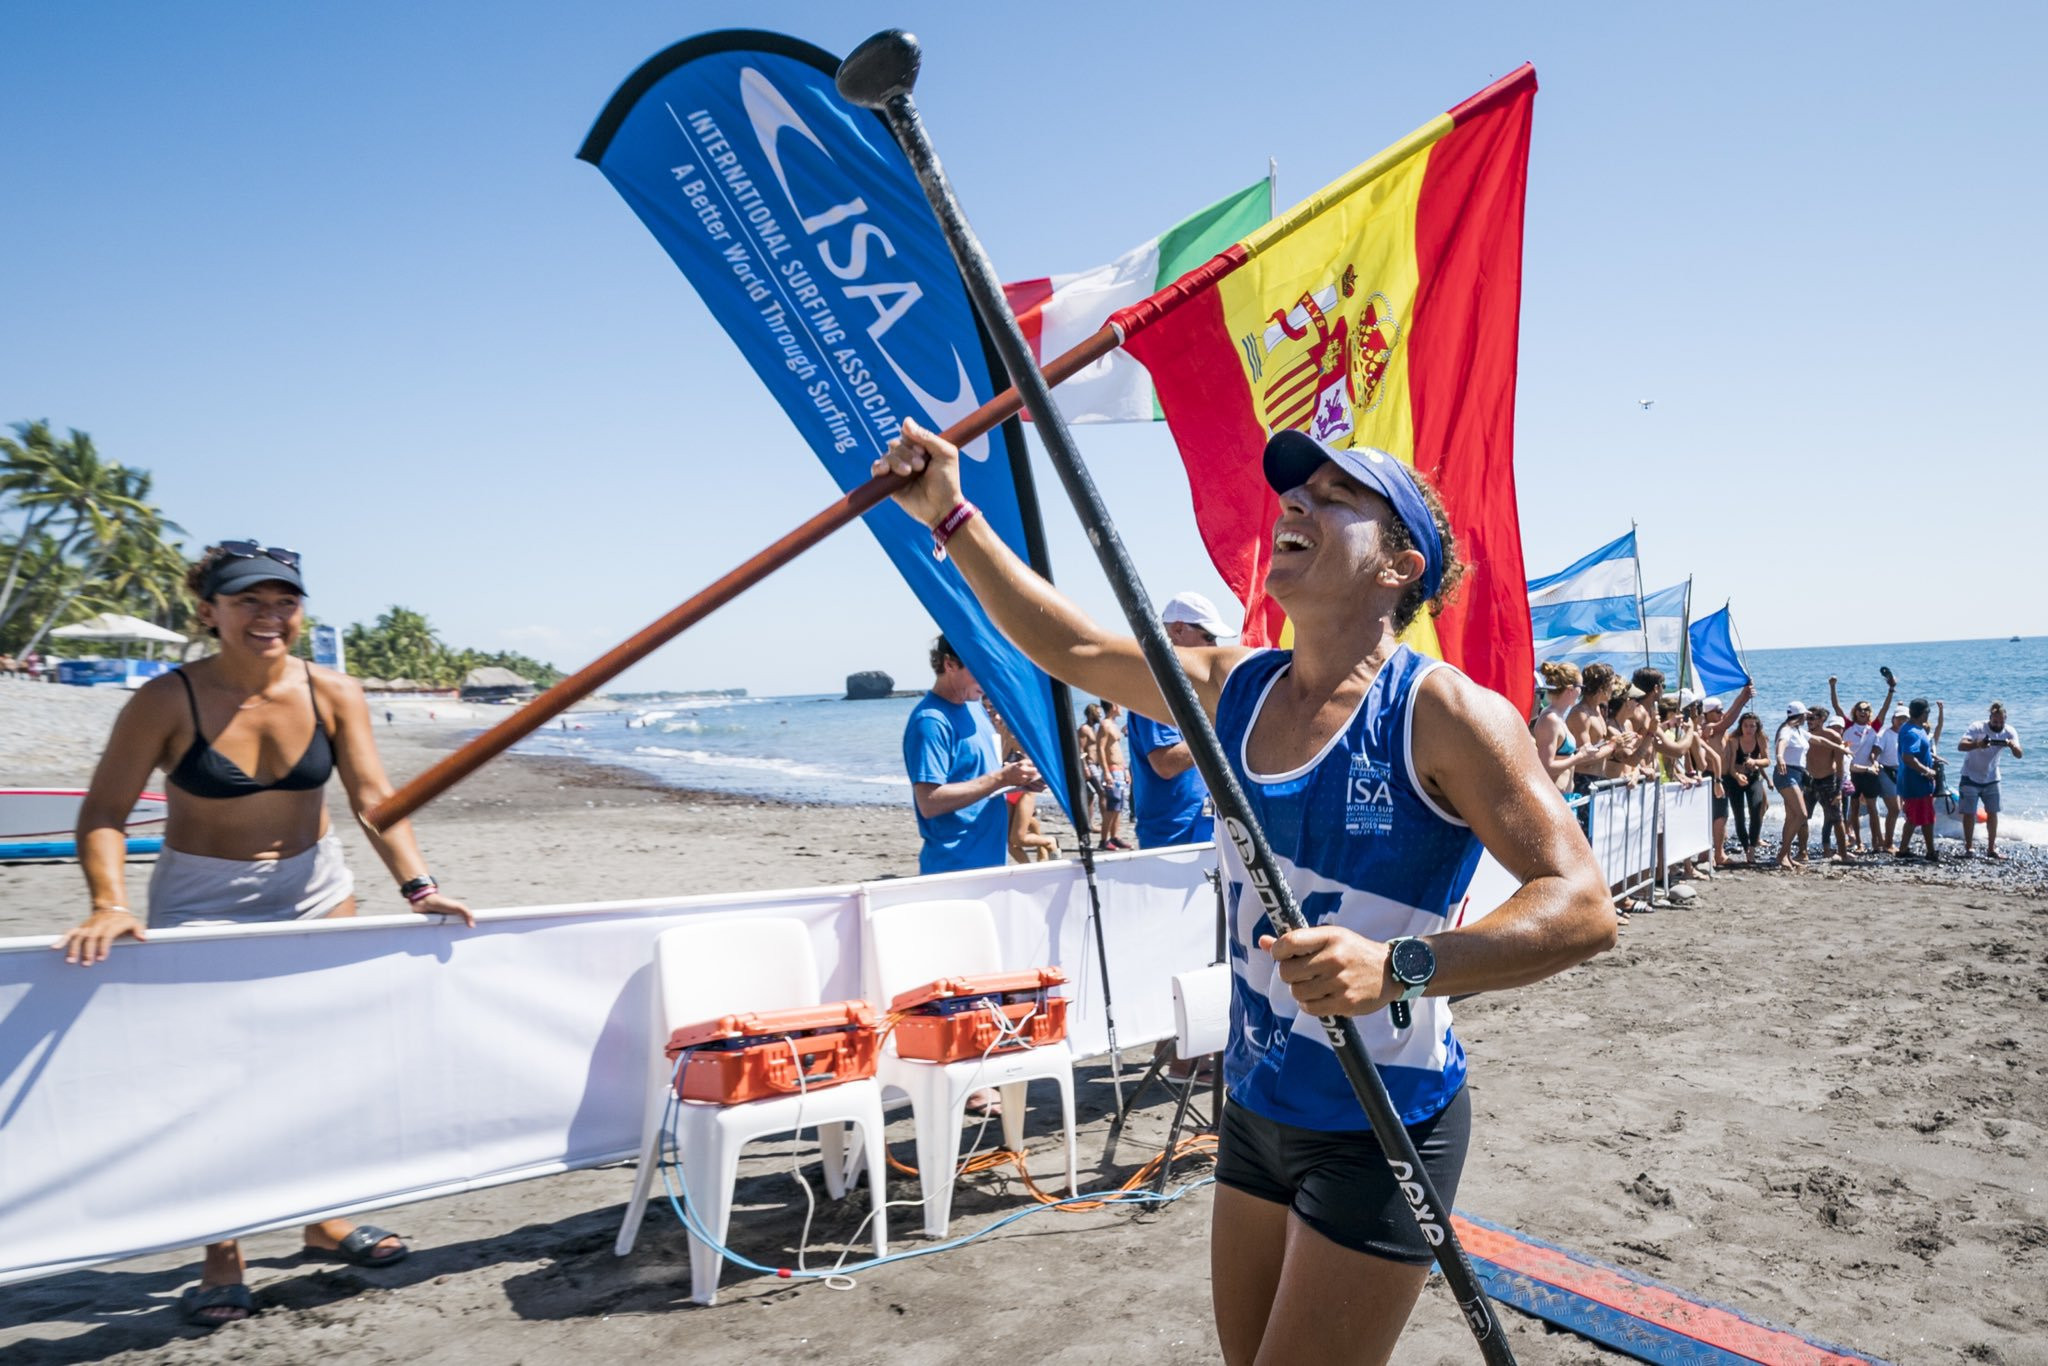 Esperanza Barreras of Spain claimed her second gold in El Sunzal on day four ©ISA